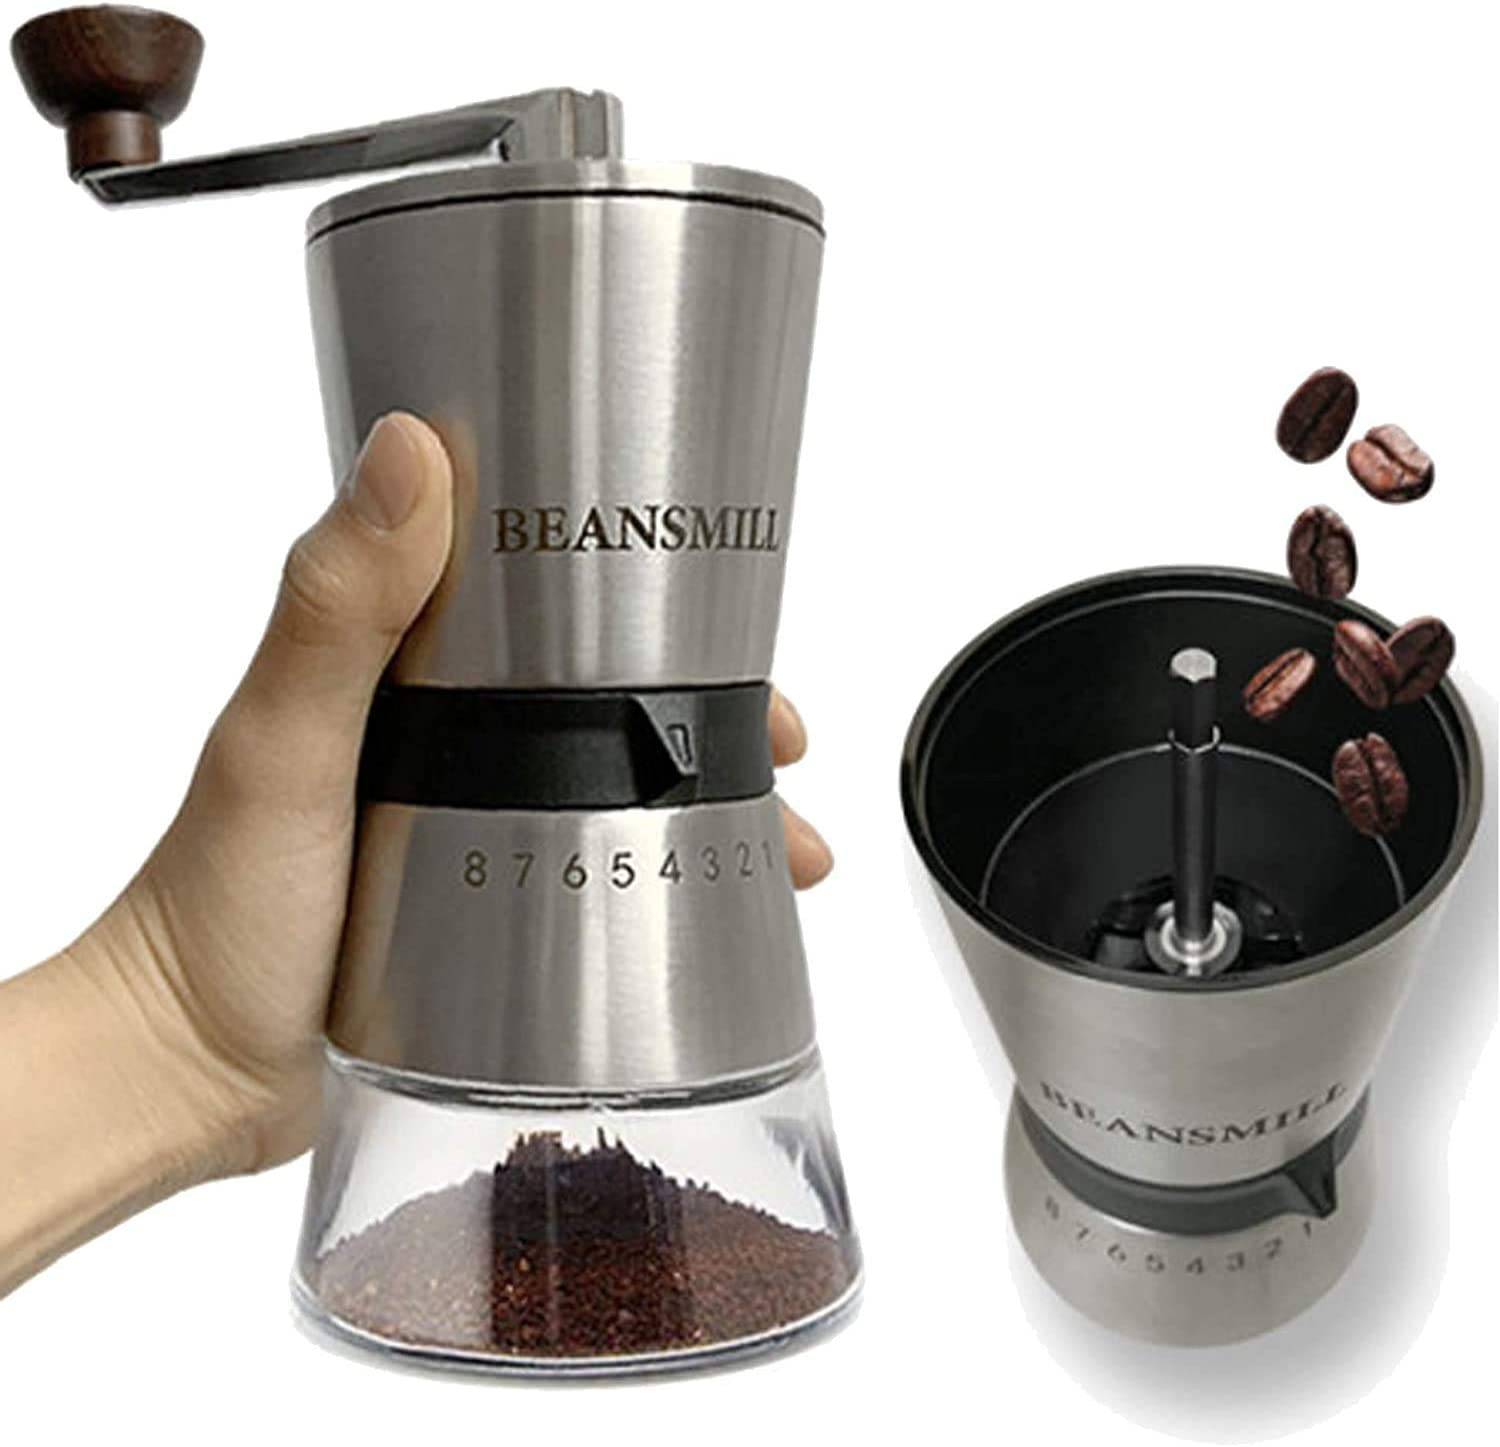 BeansMill 200 Coffee Grinder Control 15-Step Stainless Grinding Very popular Discount mail order